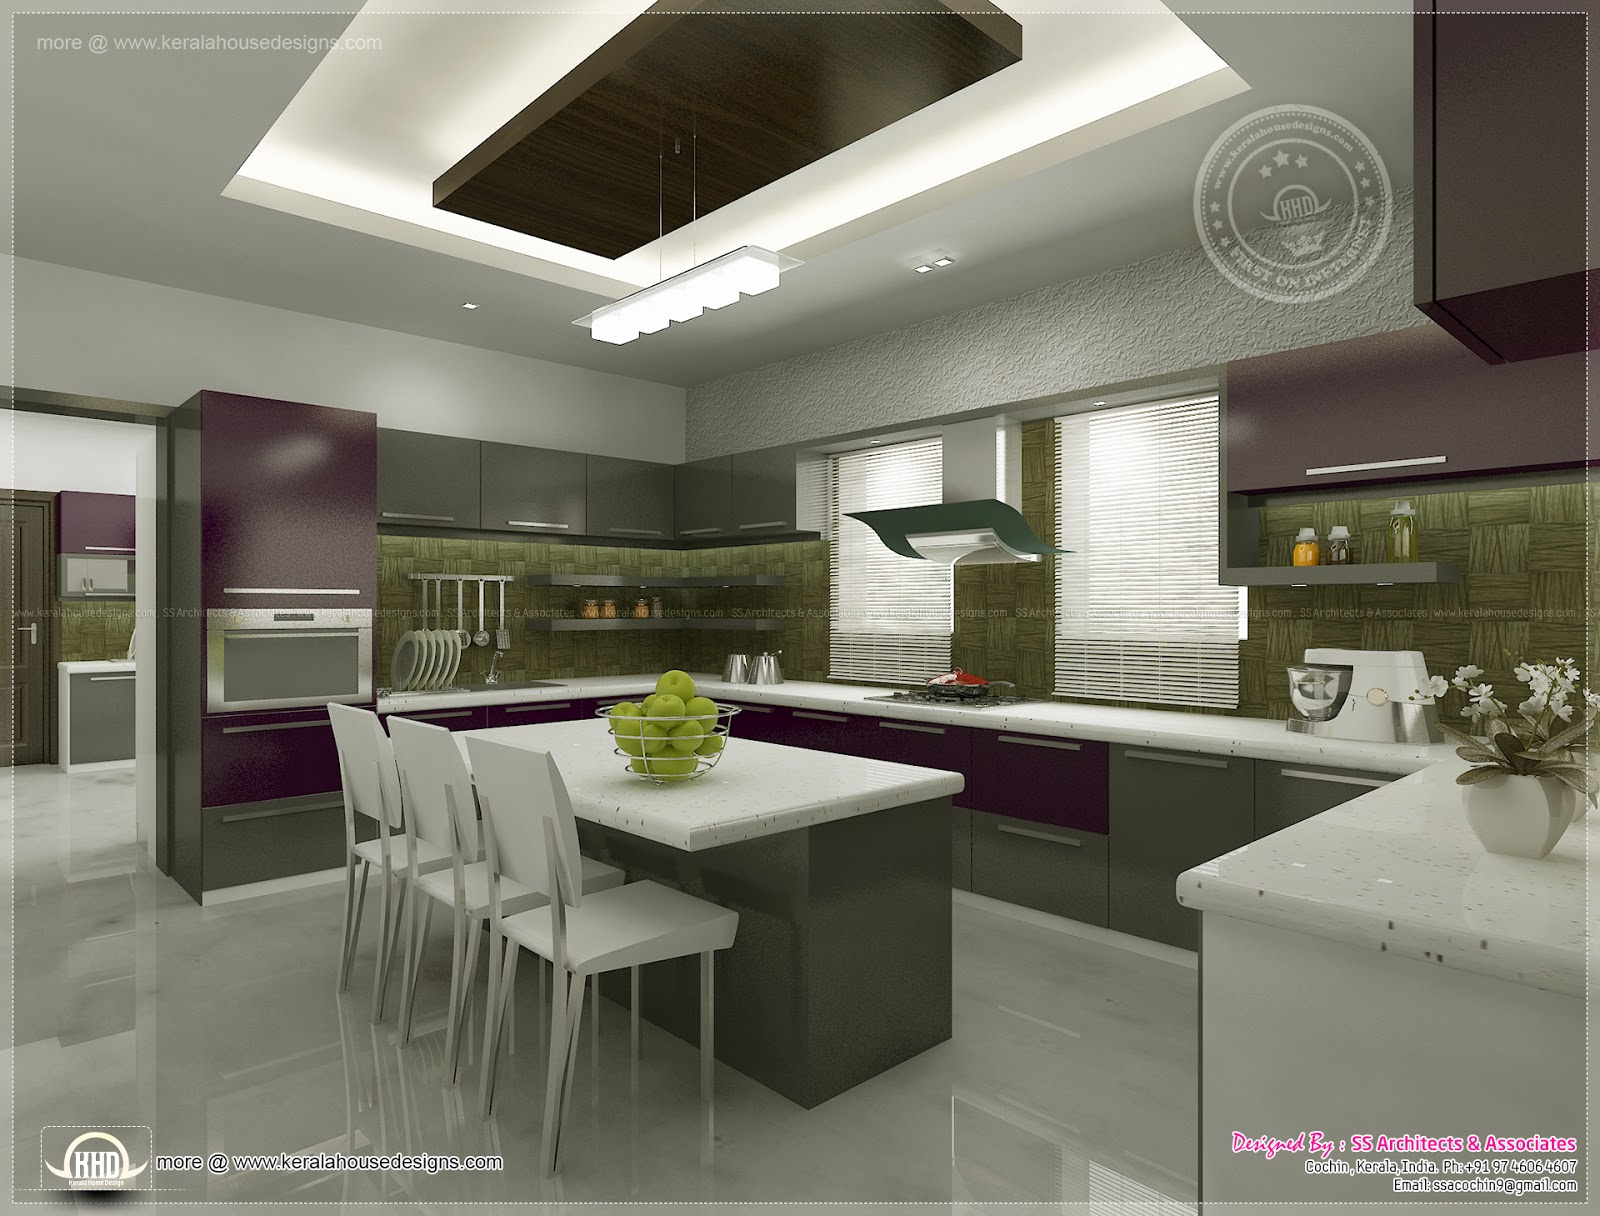 interior design kitchen pics kitchen interior views by ss architects cochin kerala 273